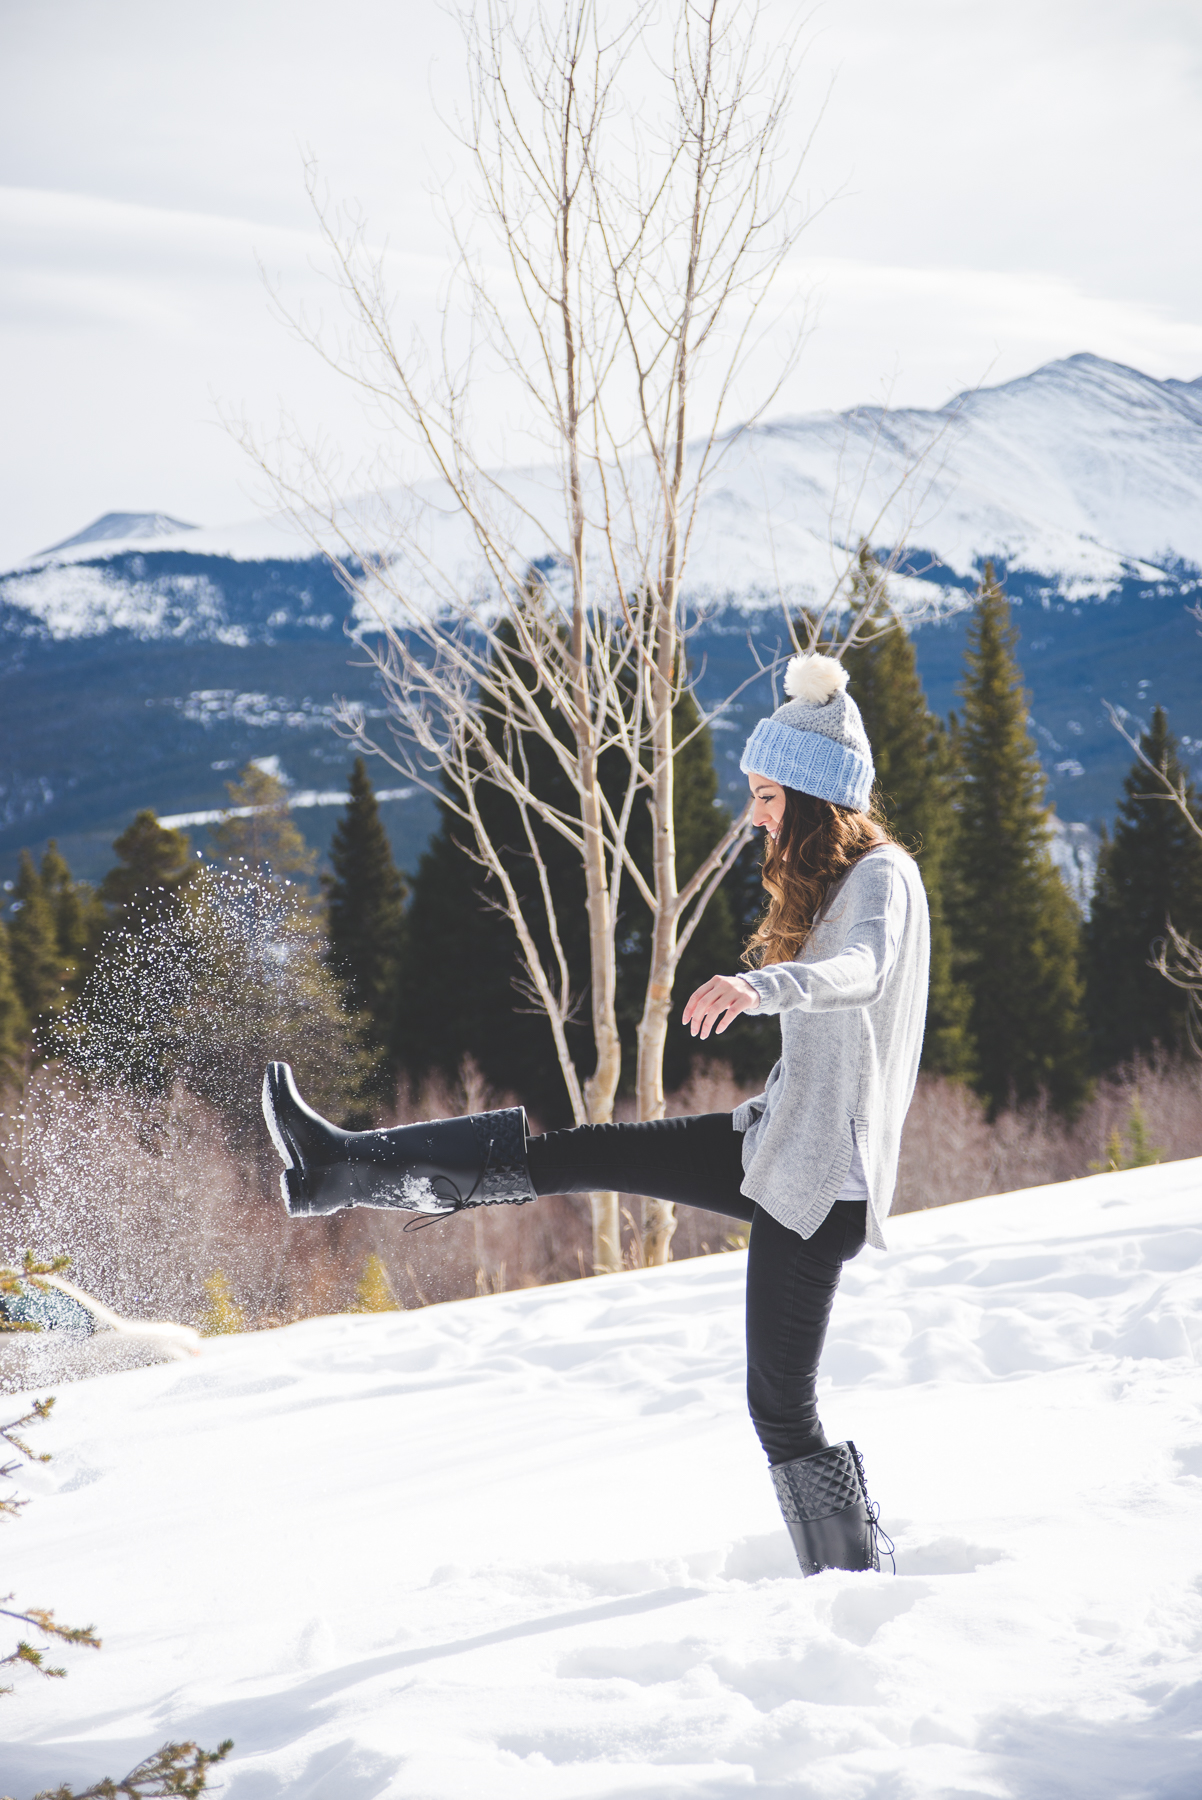 playing in the snow, winter activities, winter travel, winter vacations, breckenridge, colorado, skiing, revolve, old navy, shopbop